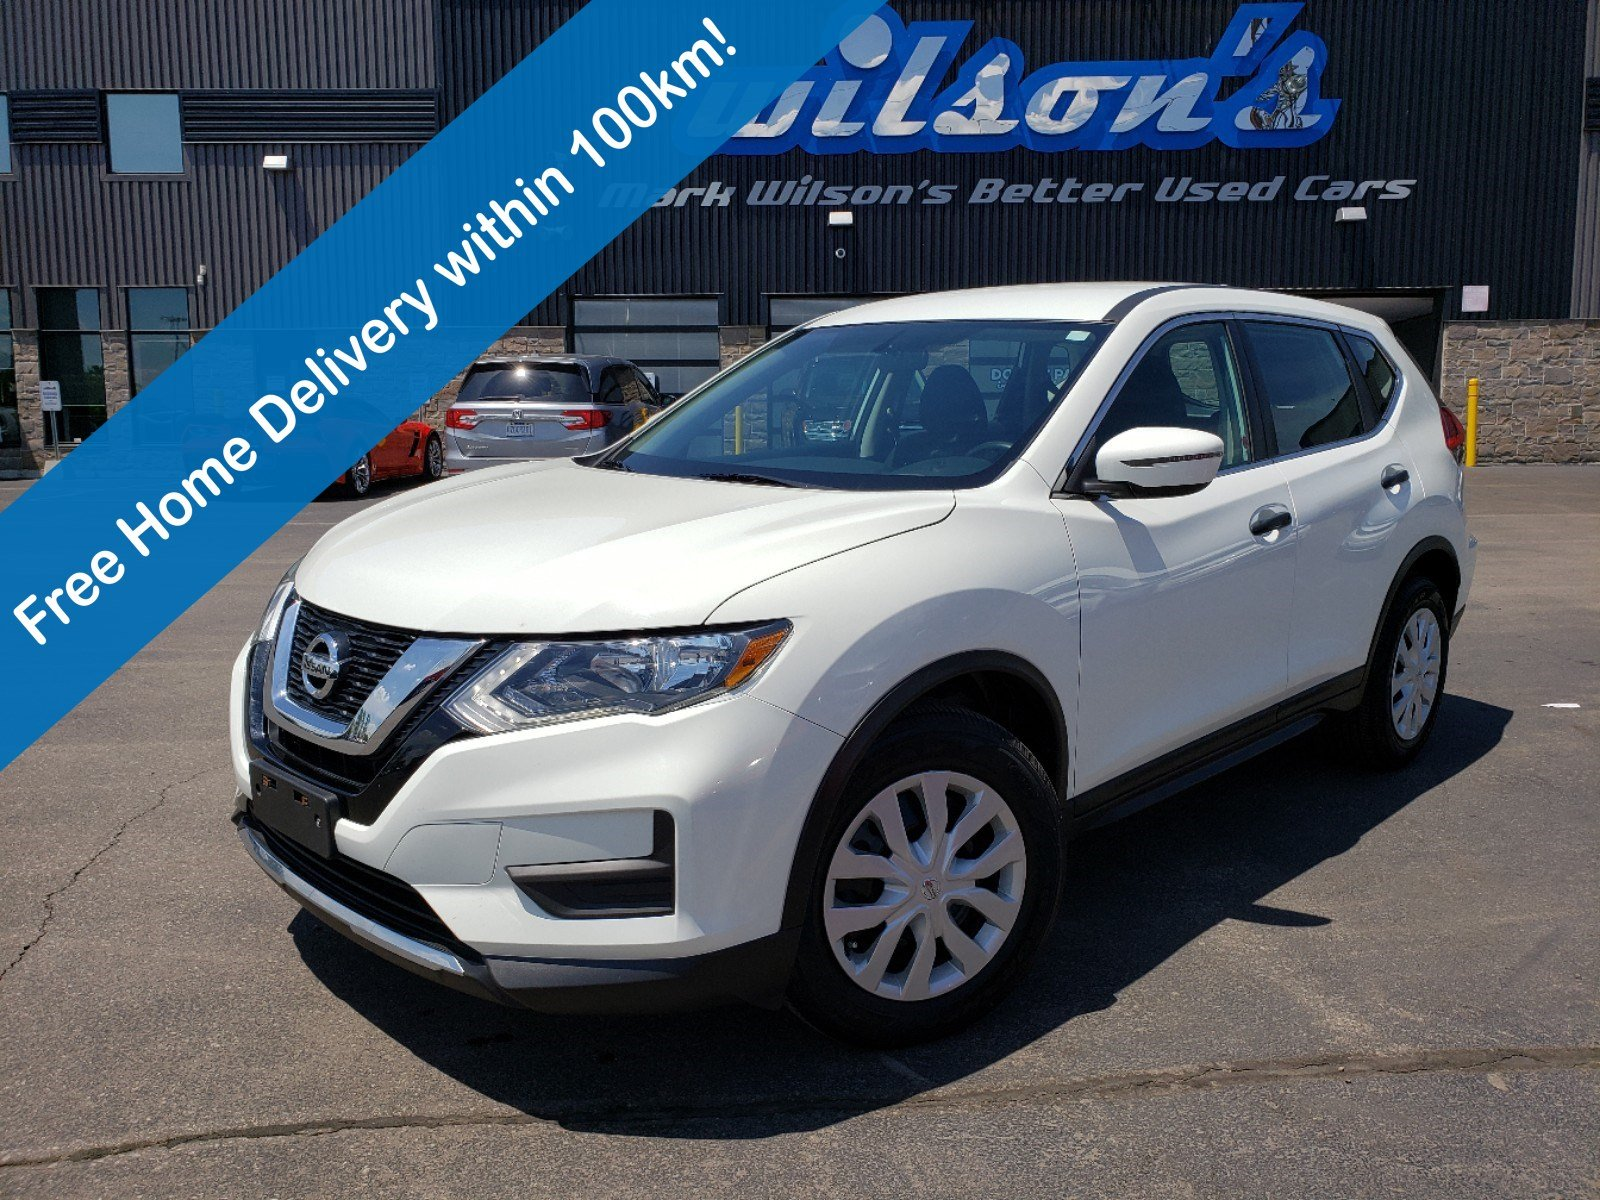 Certified Pre-Owned 2017 Nissan Rogue S, Heated Seats, Bluetooth, Rear Camera, and more!